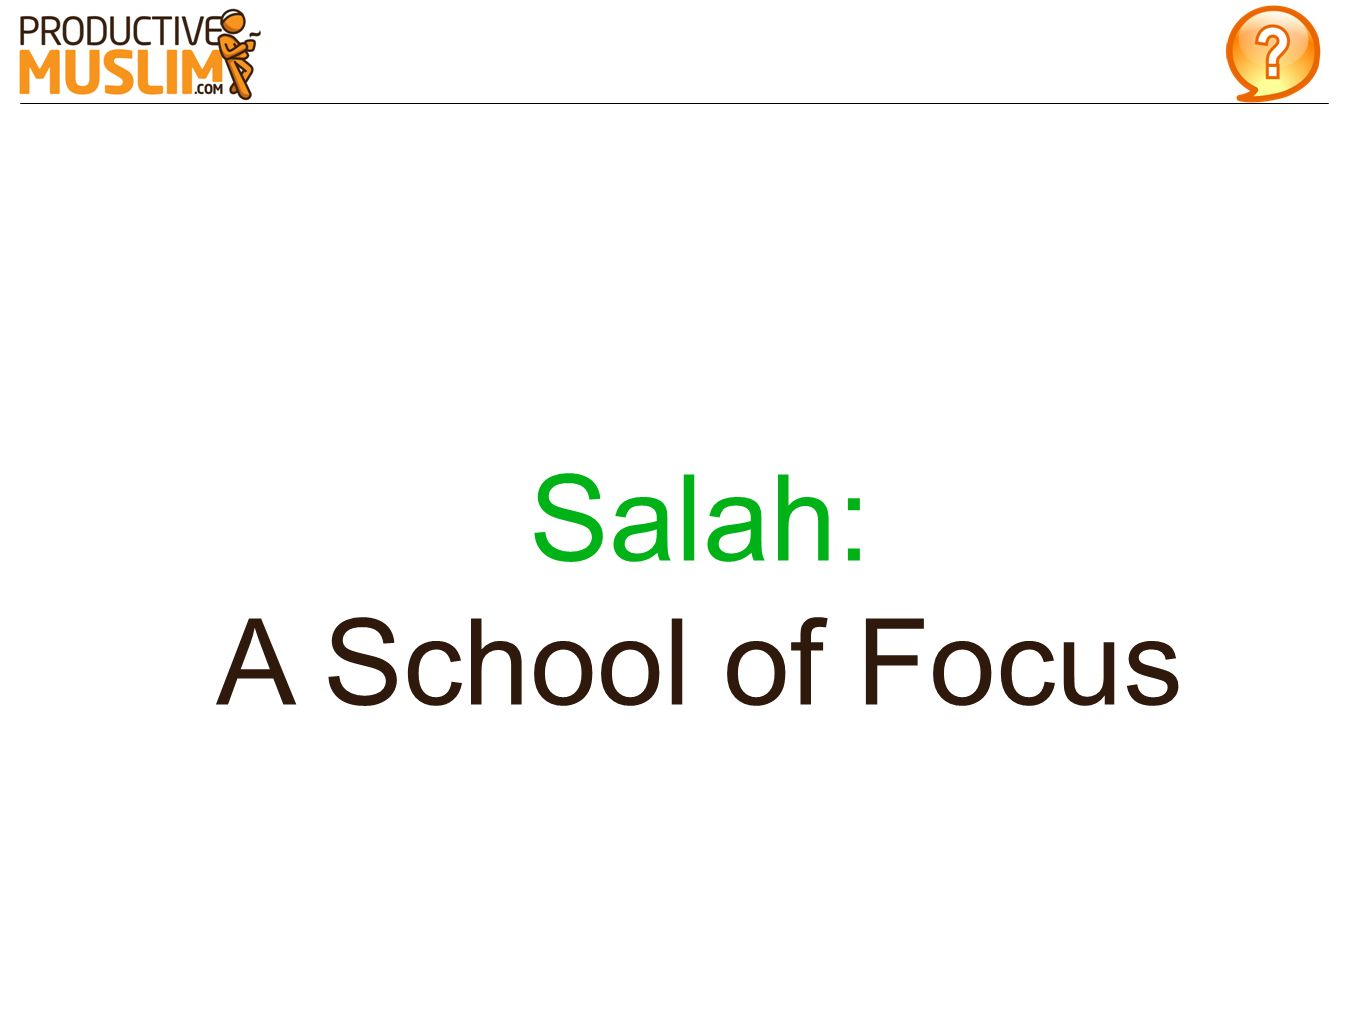 Salah: A School of Focus